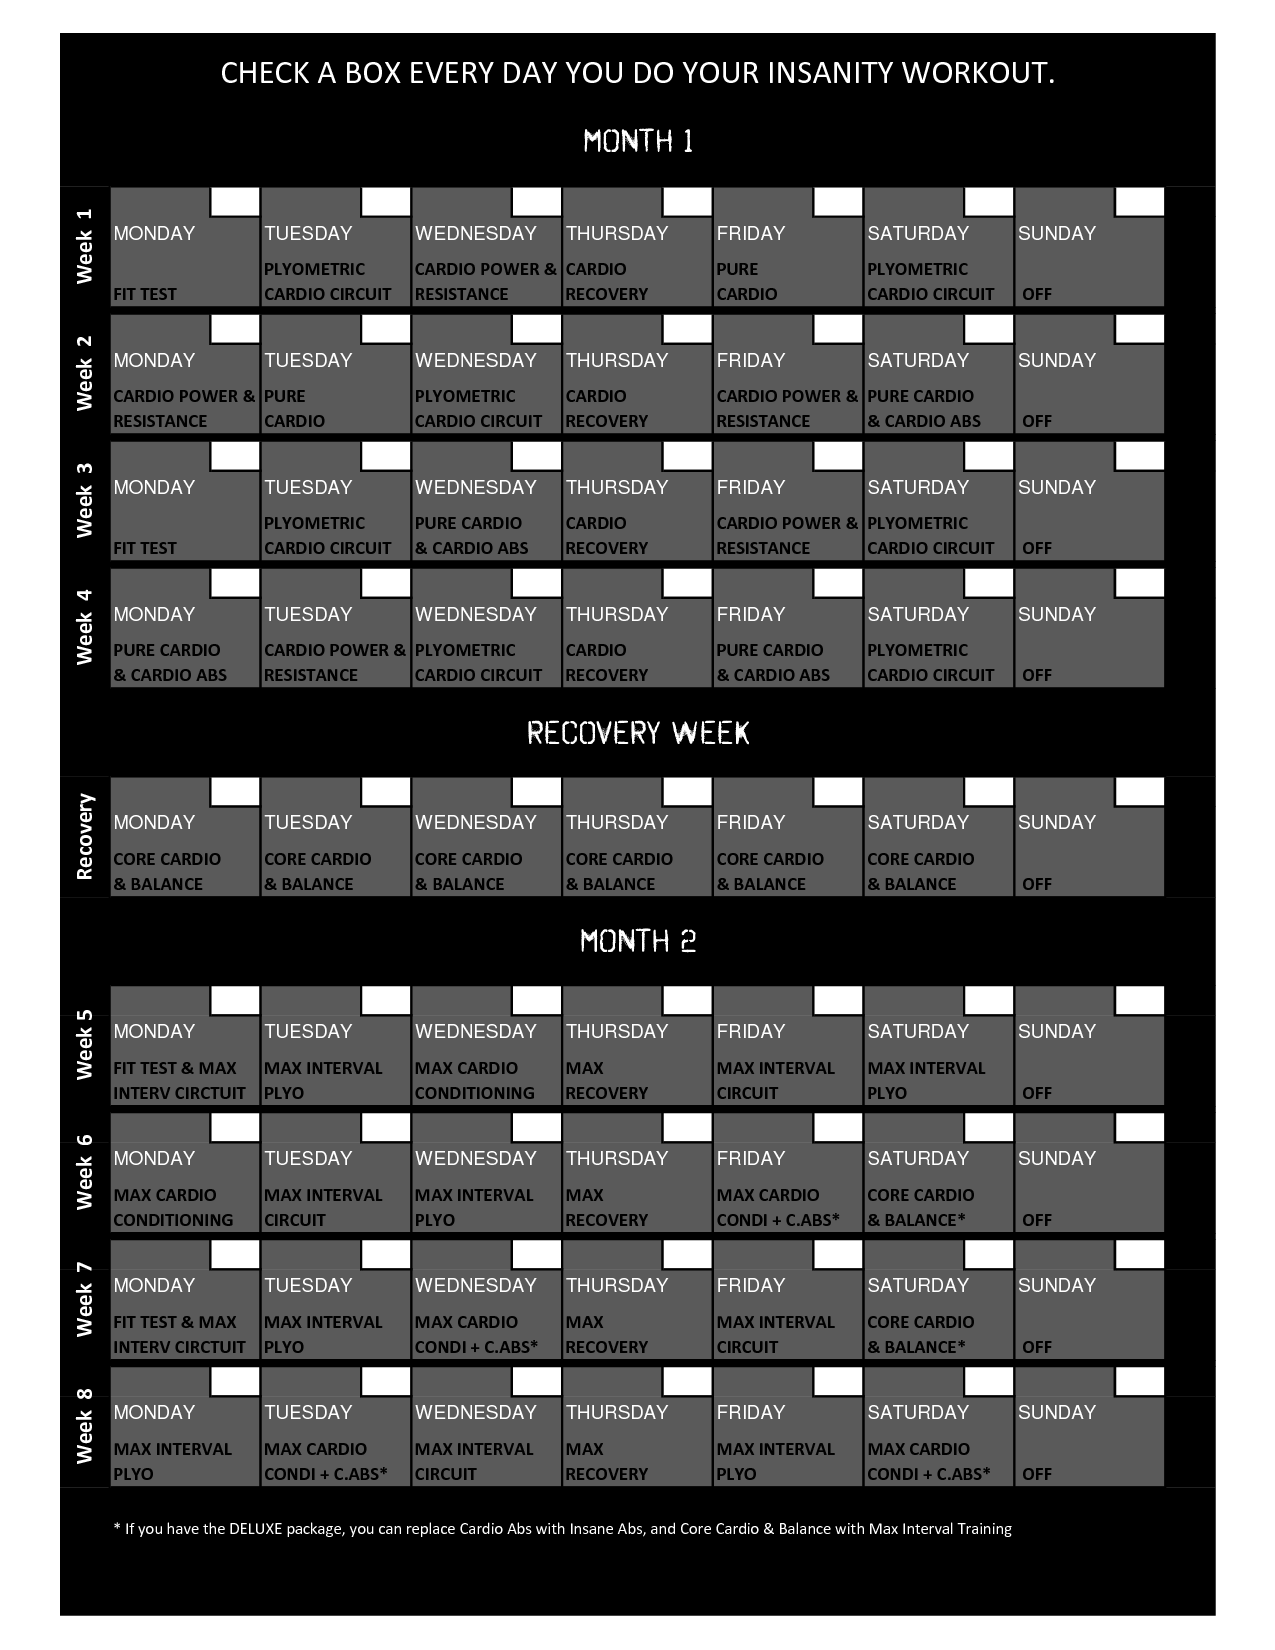 Calendario Insanity.Insanity Workout Calendar Yahoo Search Results Insanity Schedule